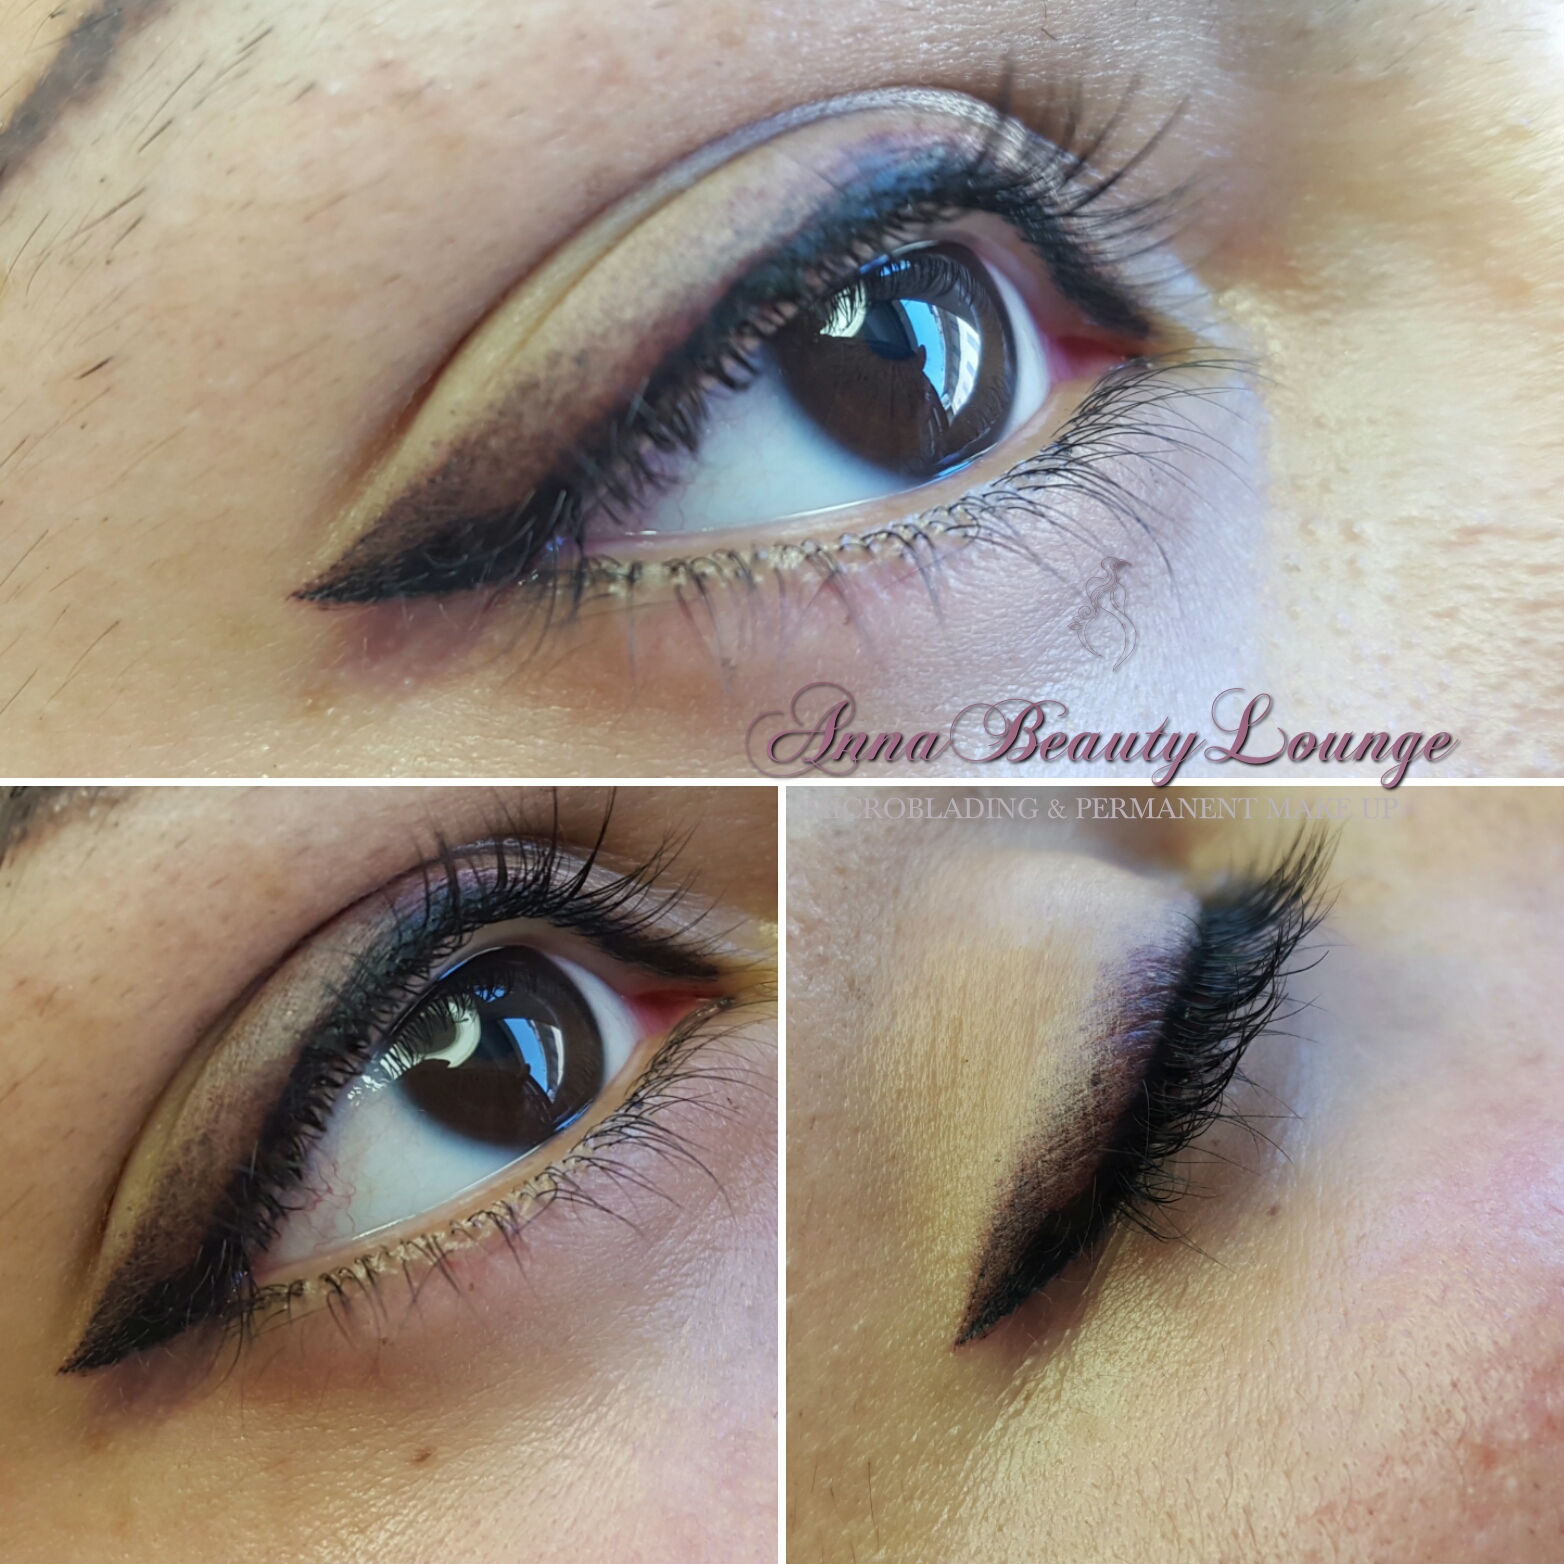 semi permanent makeup eye liner anna beauty lounge. Black Bedroom Furniture Sets. Home Design Ideas